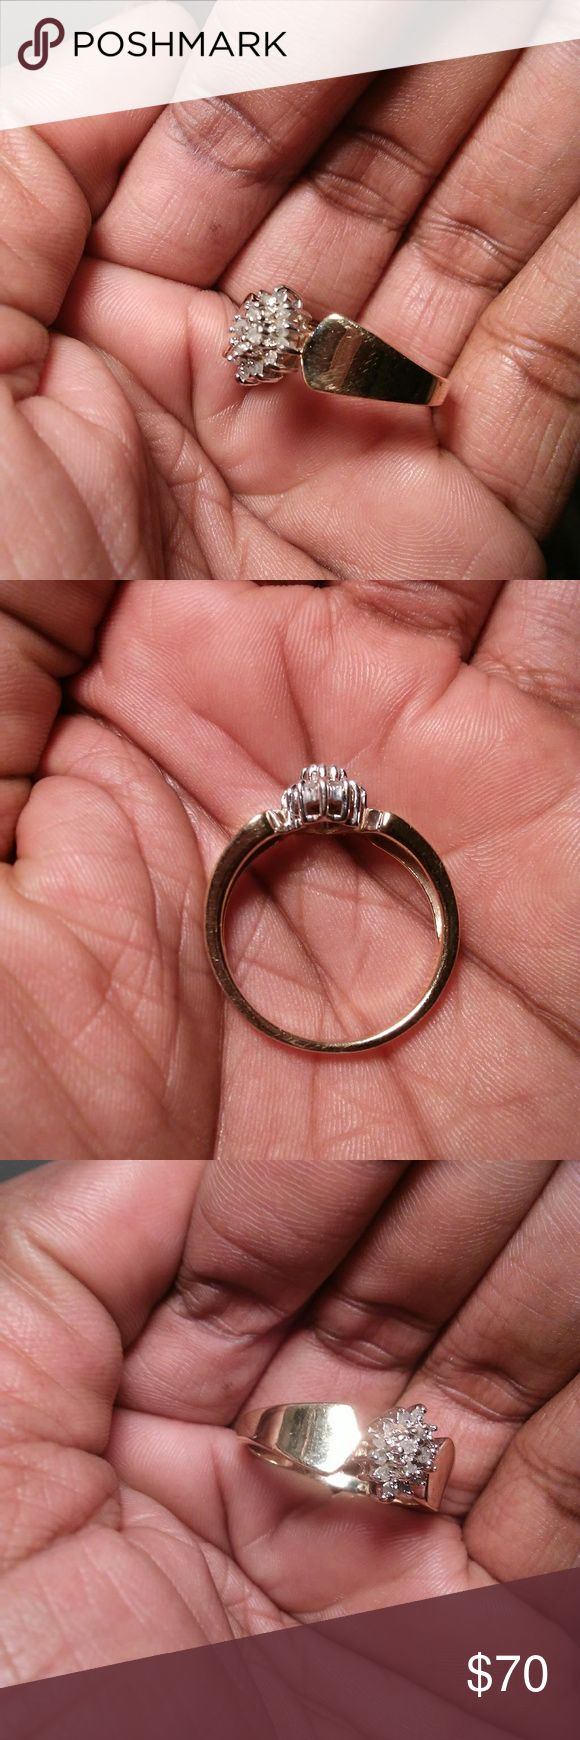 REAL DIAMONDS RING Good Condition.. Size 8 1/2.. Real Diamonds.. Marked 925'.. This is Sterling Silver.. But a gold color.. TESTED BY A JEWELER.. Kay Jewelers Jewelry Rings